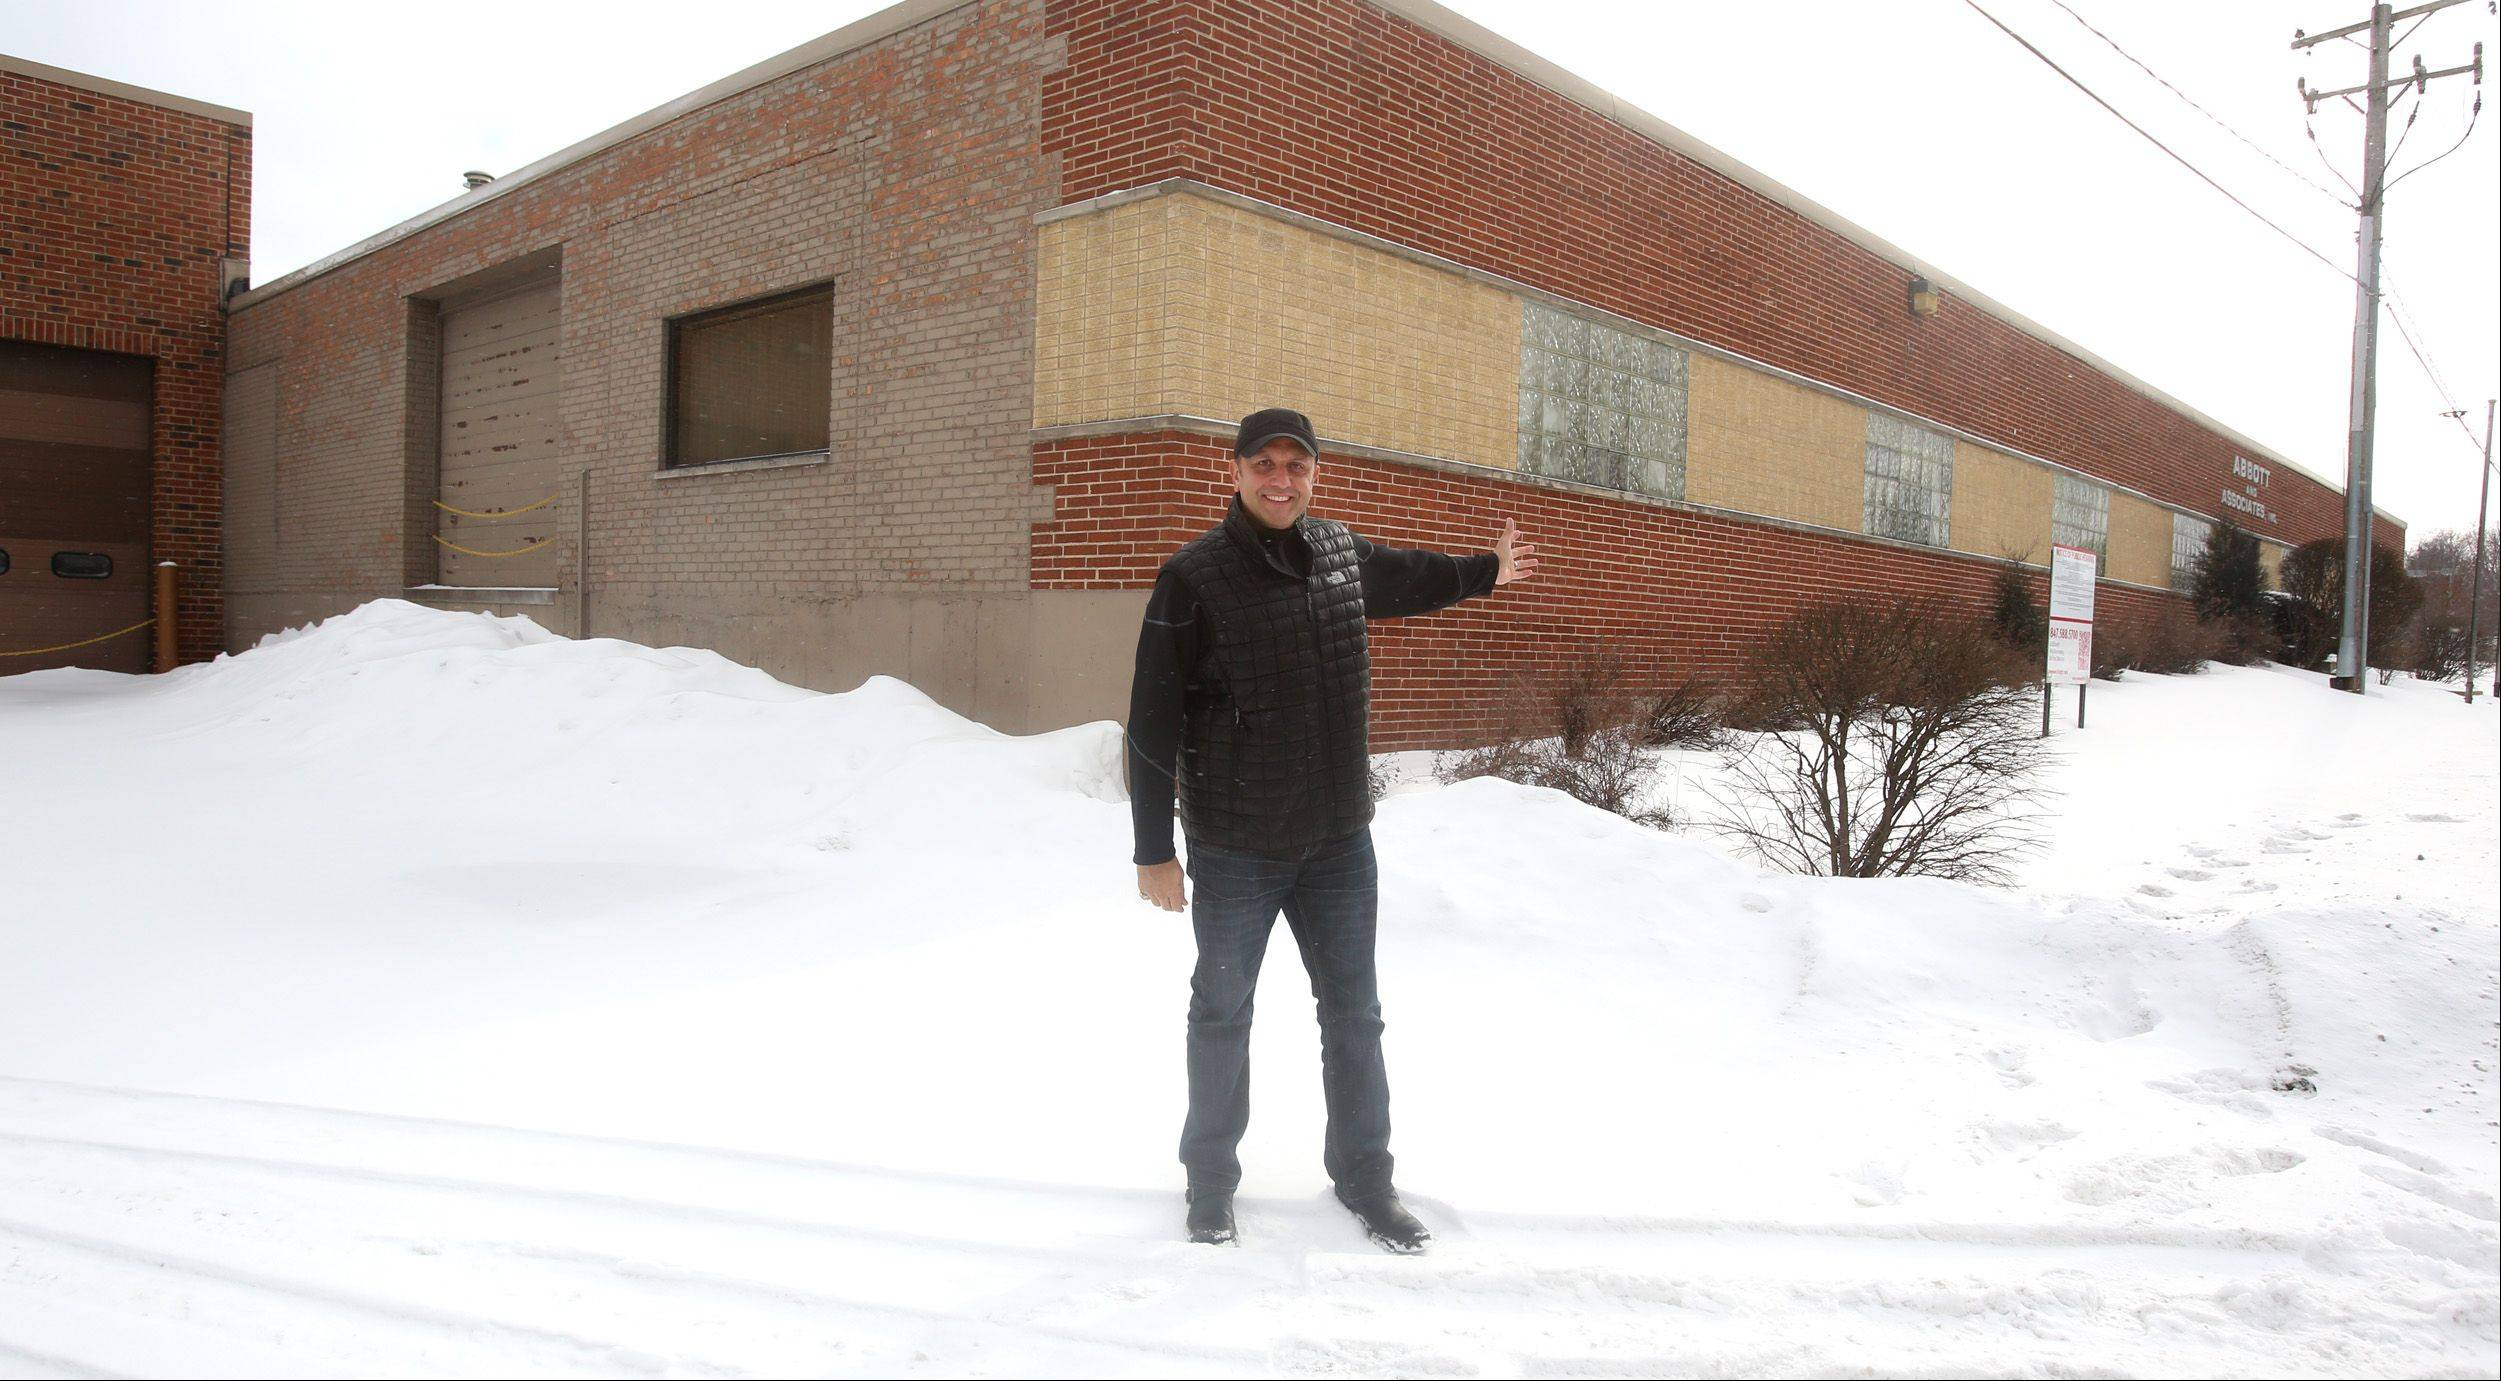 Julian Perez of Roselle is seeking permission from Bloomingdale to open a shooting sports facility along Circle Avenue, just north of Lake Street. The site is the empty building that was last used as a sheet metal fabricating business.